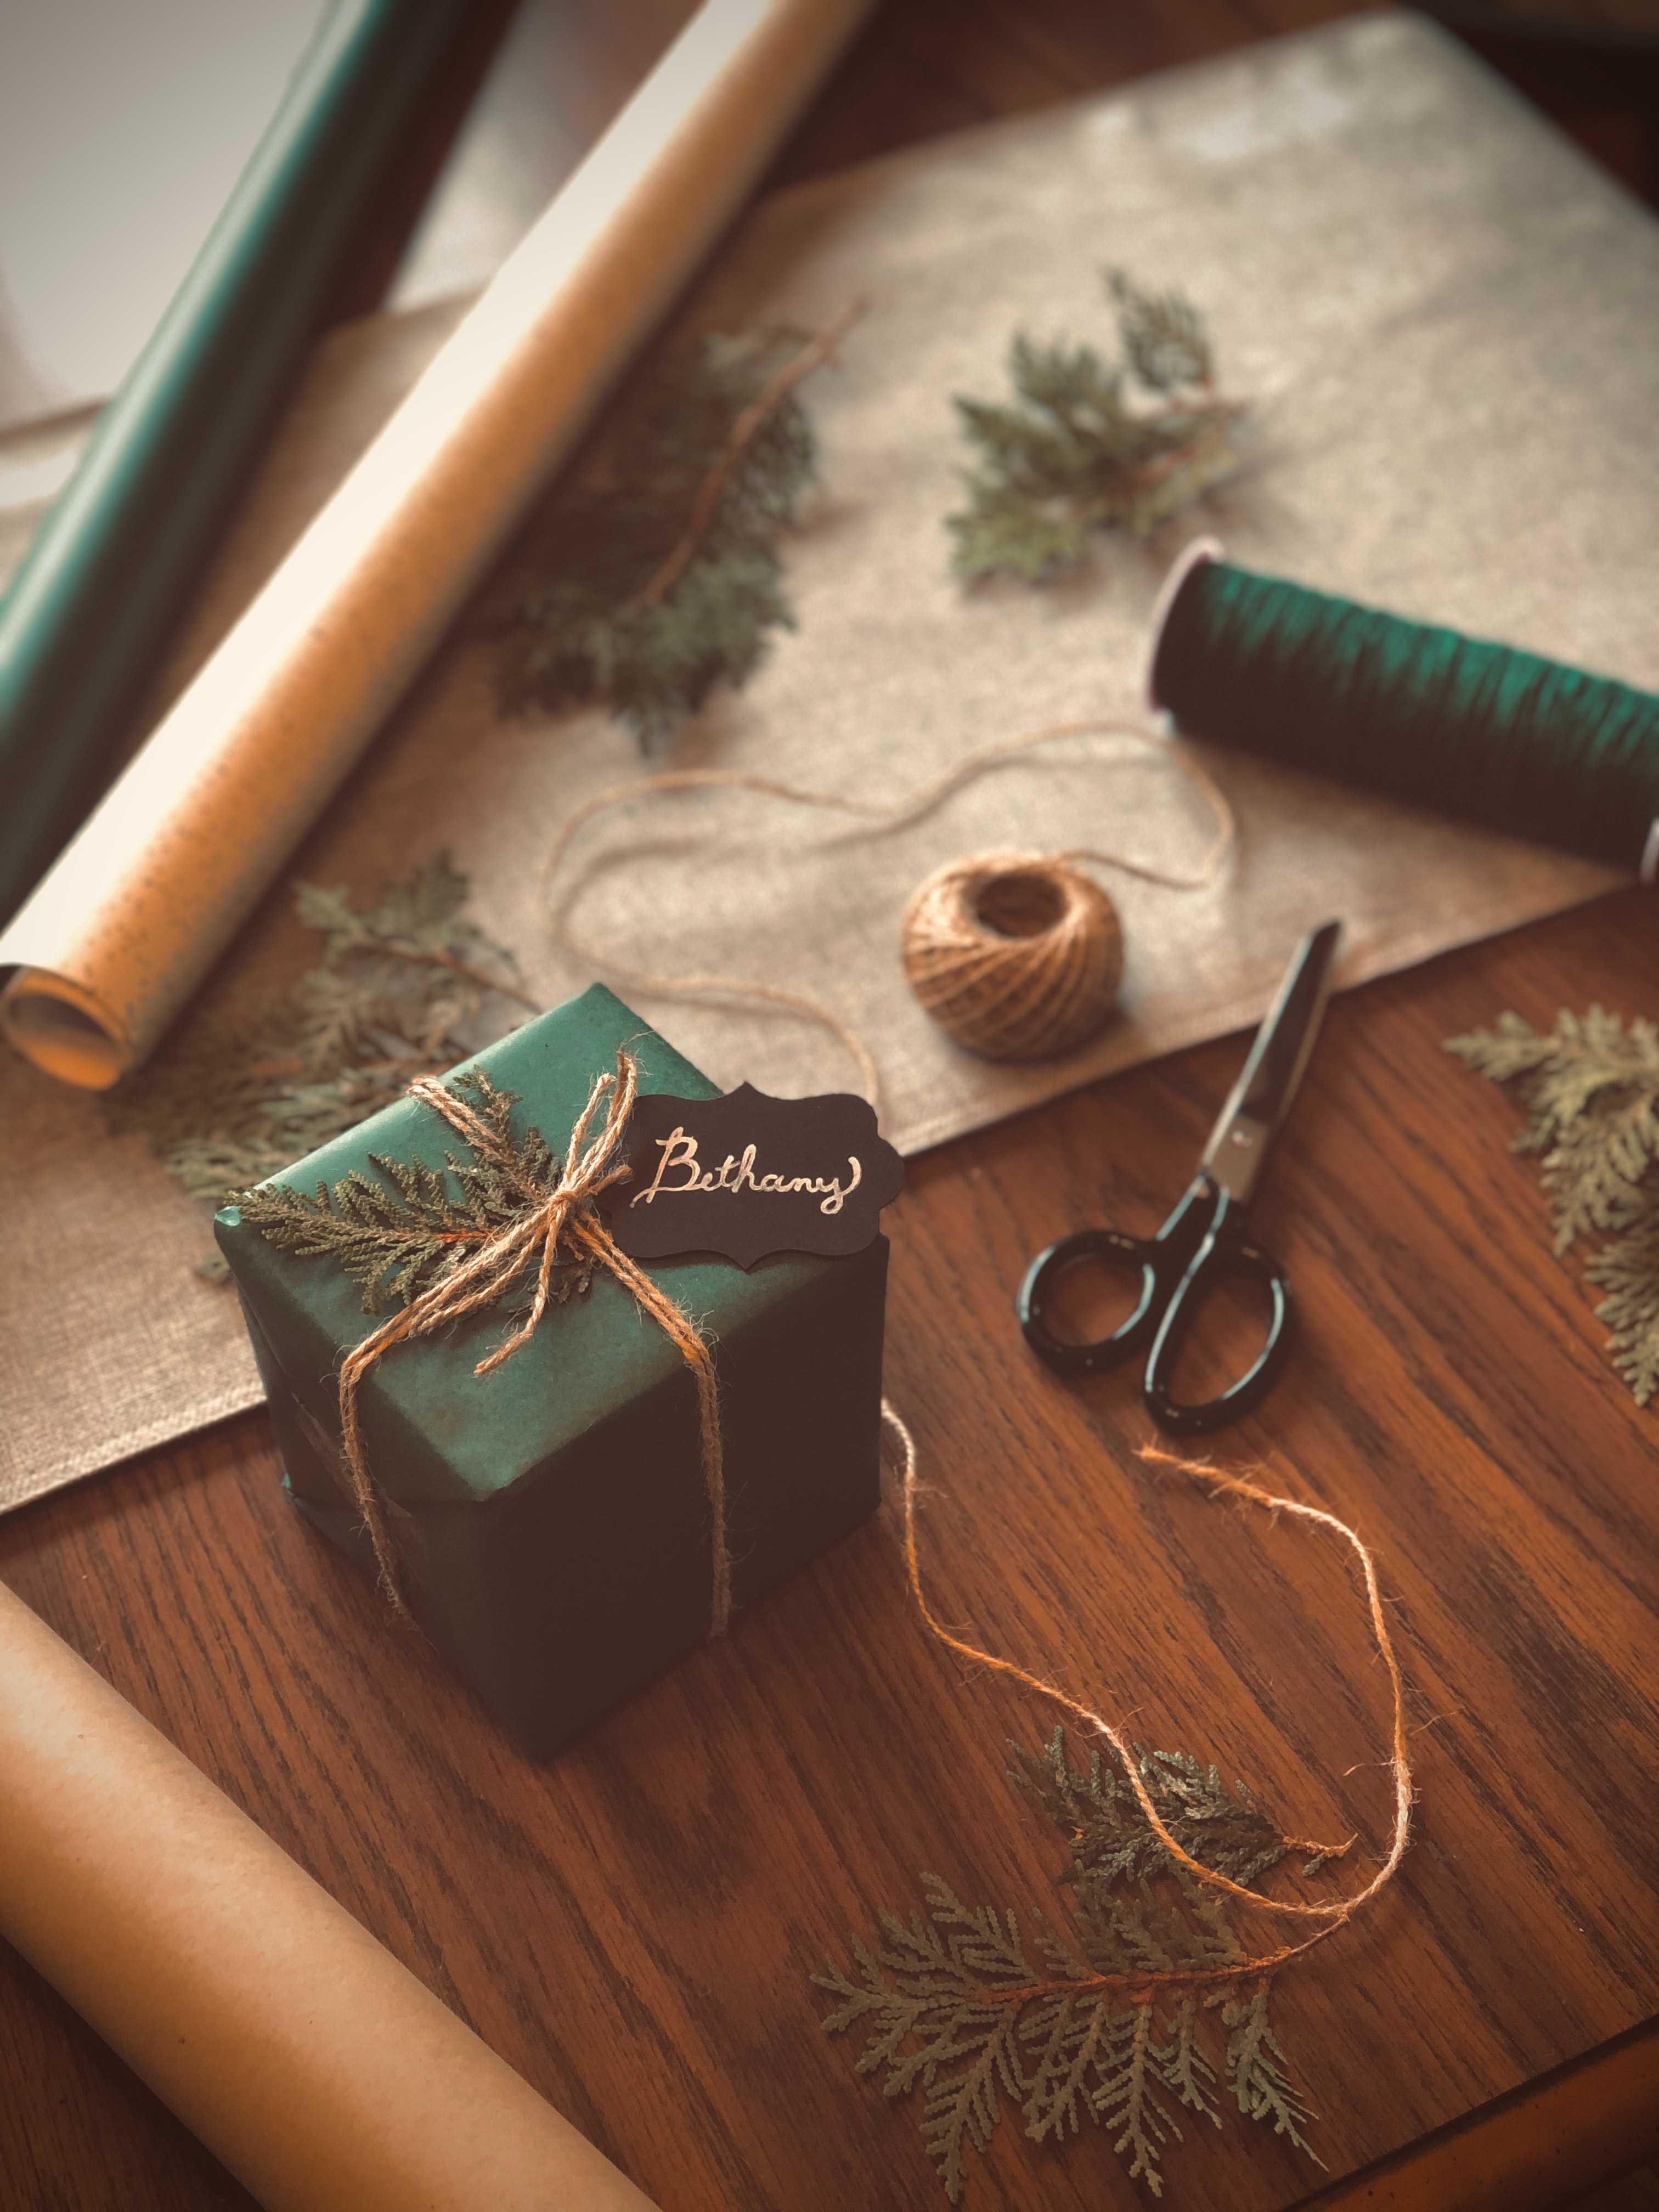 144824 download wallpaper Miscellanea, Miscellaneous, Present, Gift, Box, Scissors, Threads, Thread, Branches screensavers and pictures for free